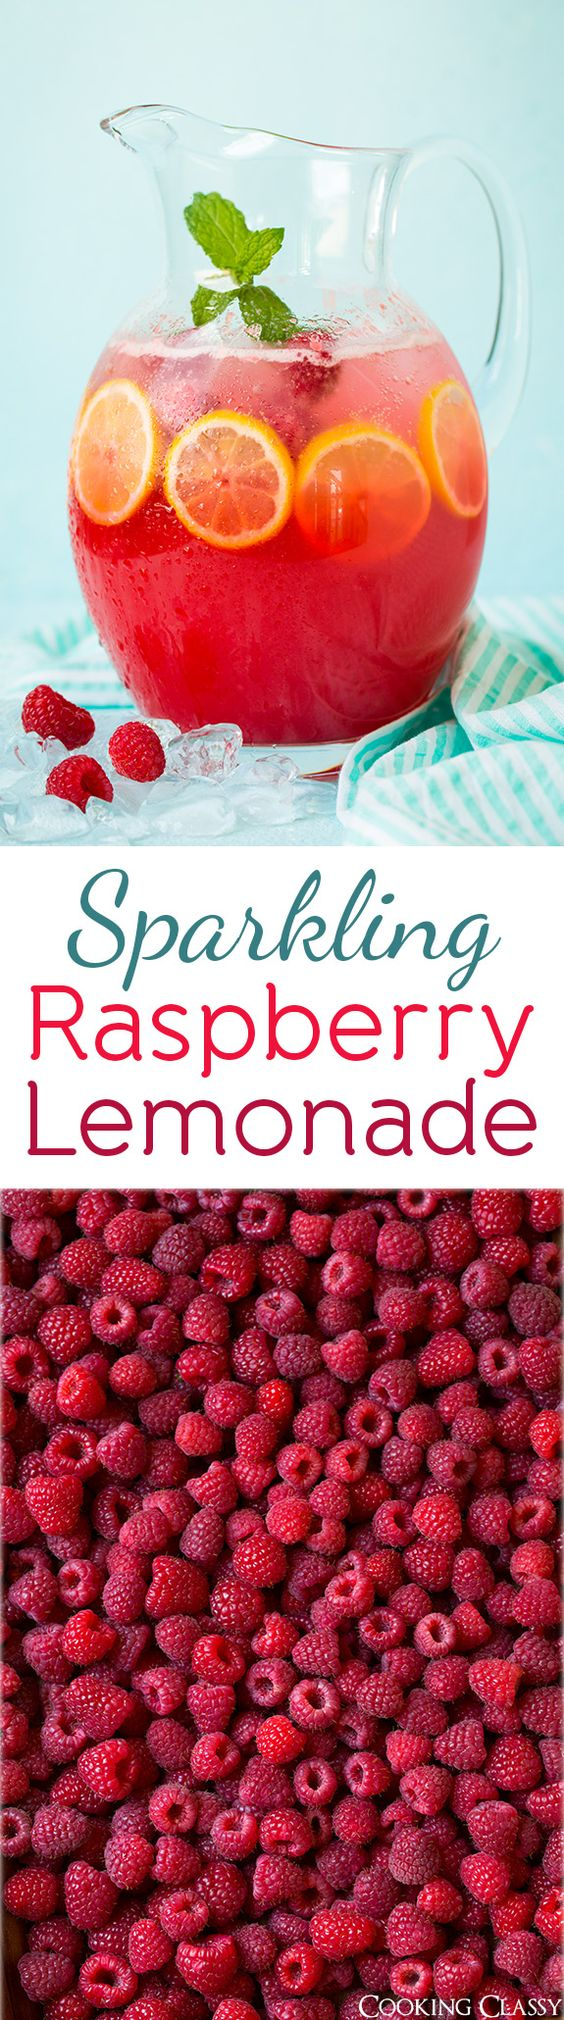 Sparkling Raspberry Lemonade - the ultimate refreshing summer drink ...